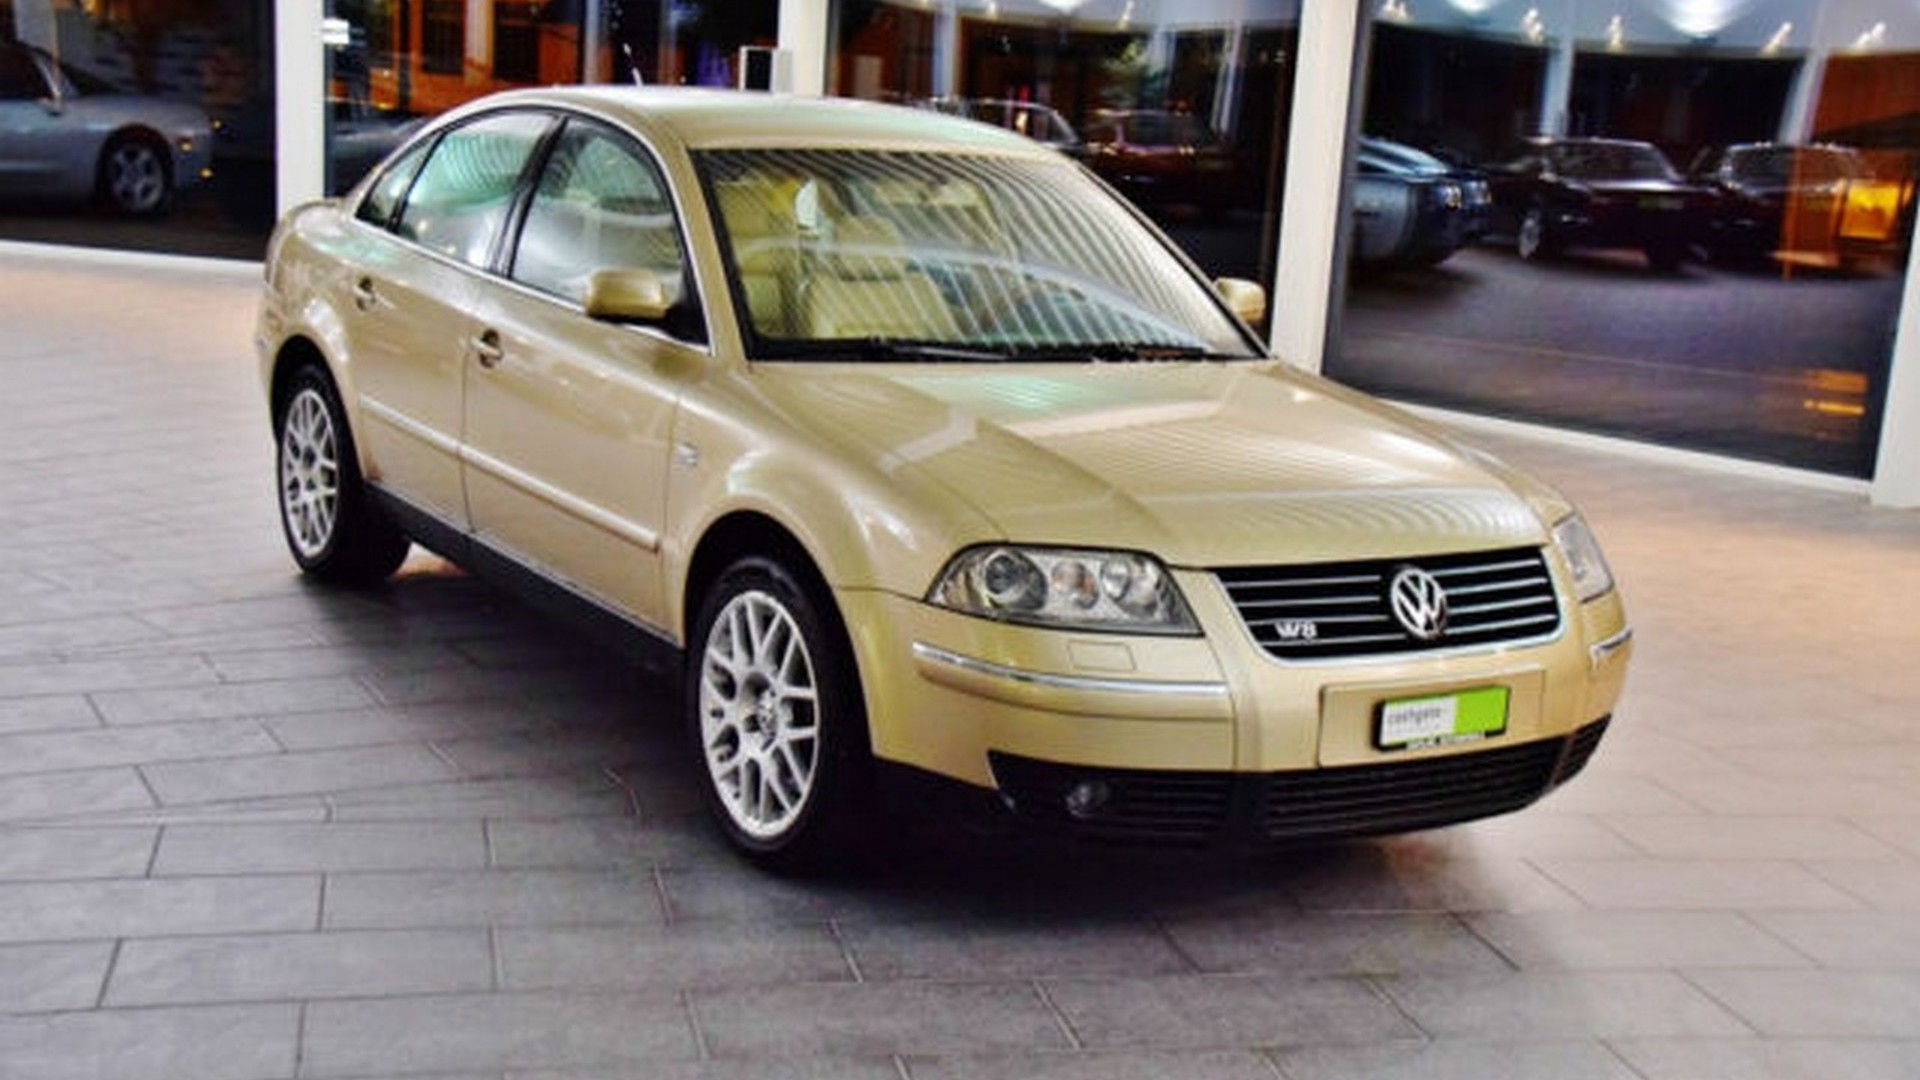 Vw passat manual mint 2002 vw passat w8 with manual gearbox is quite desirable fandeluxe Image collections